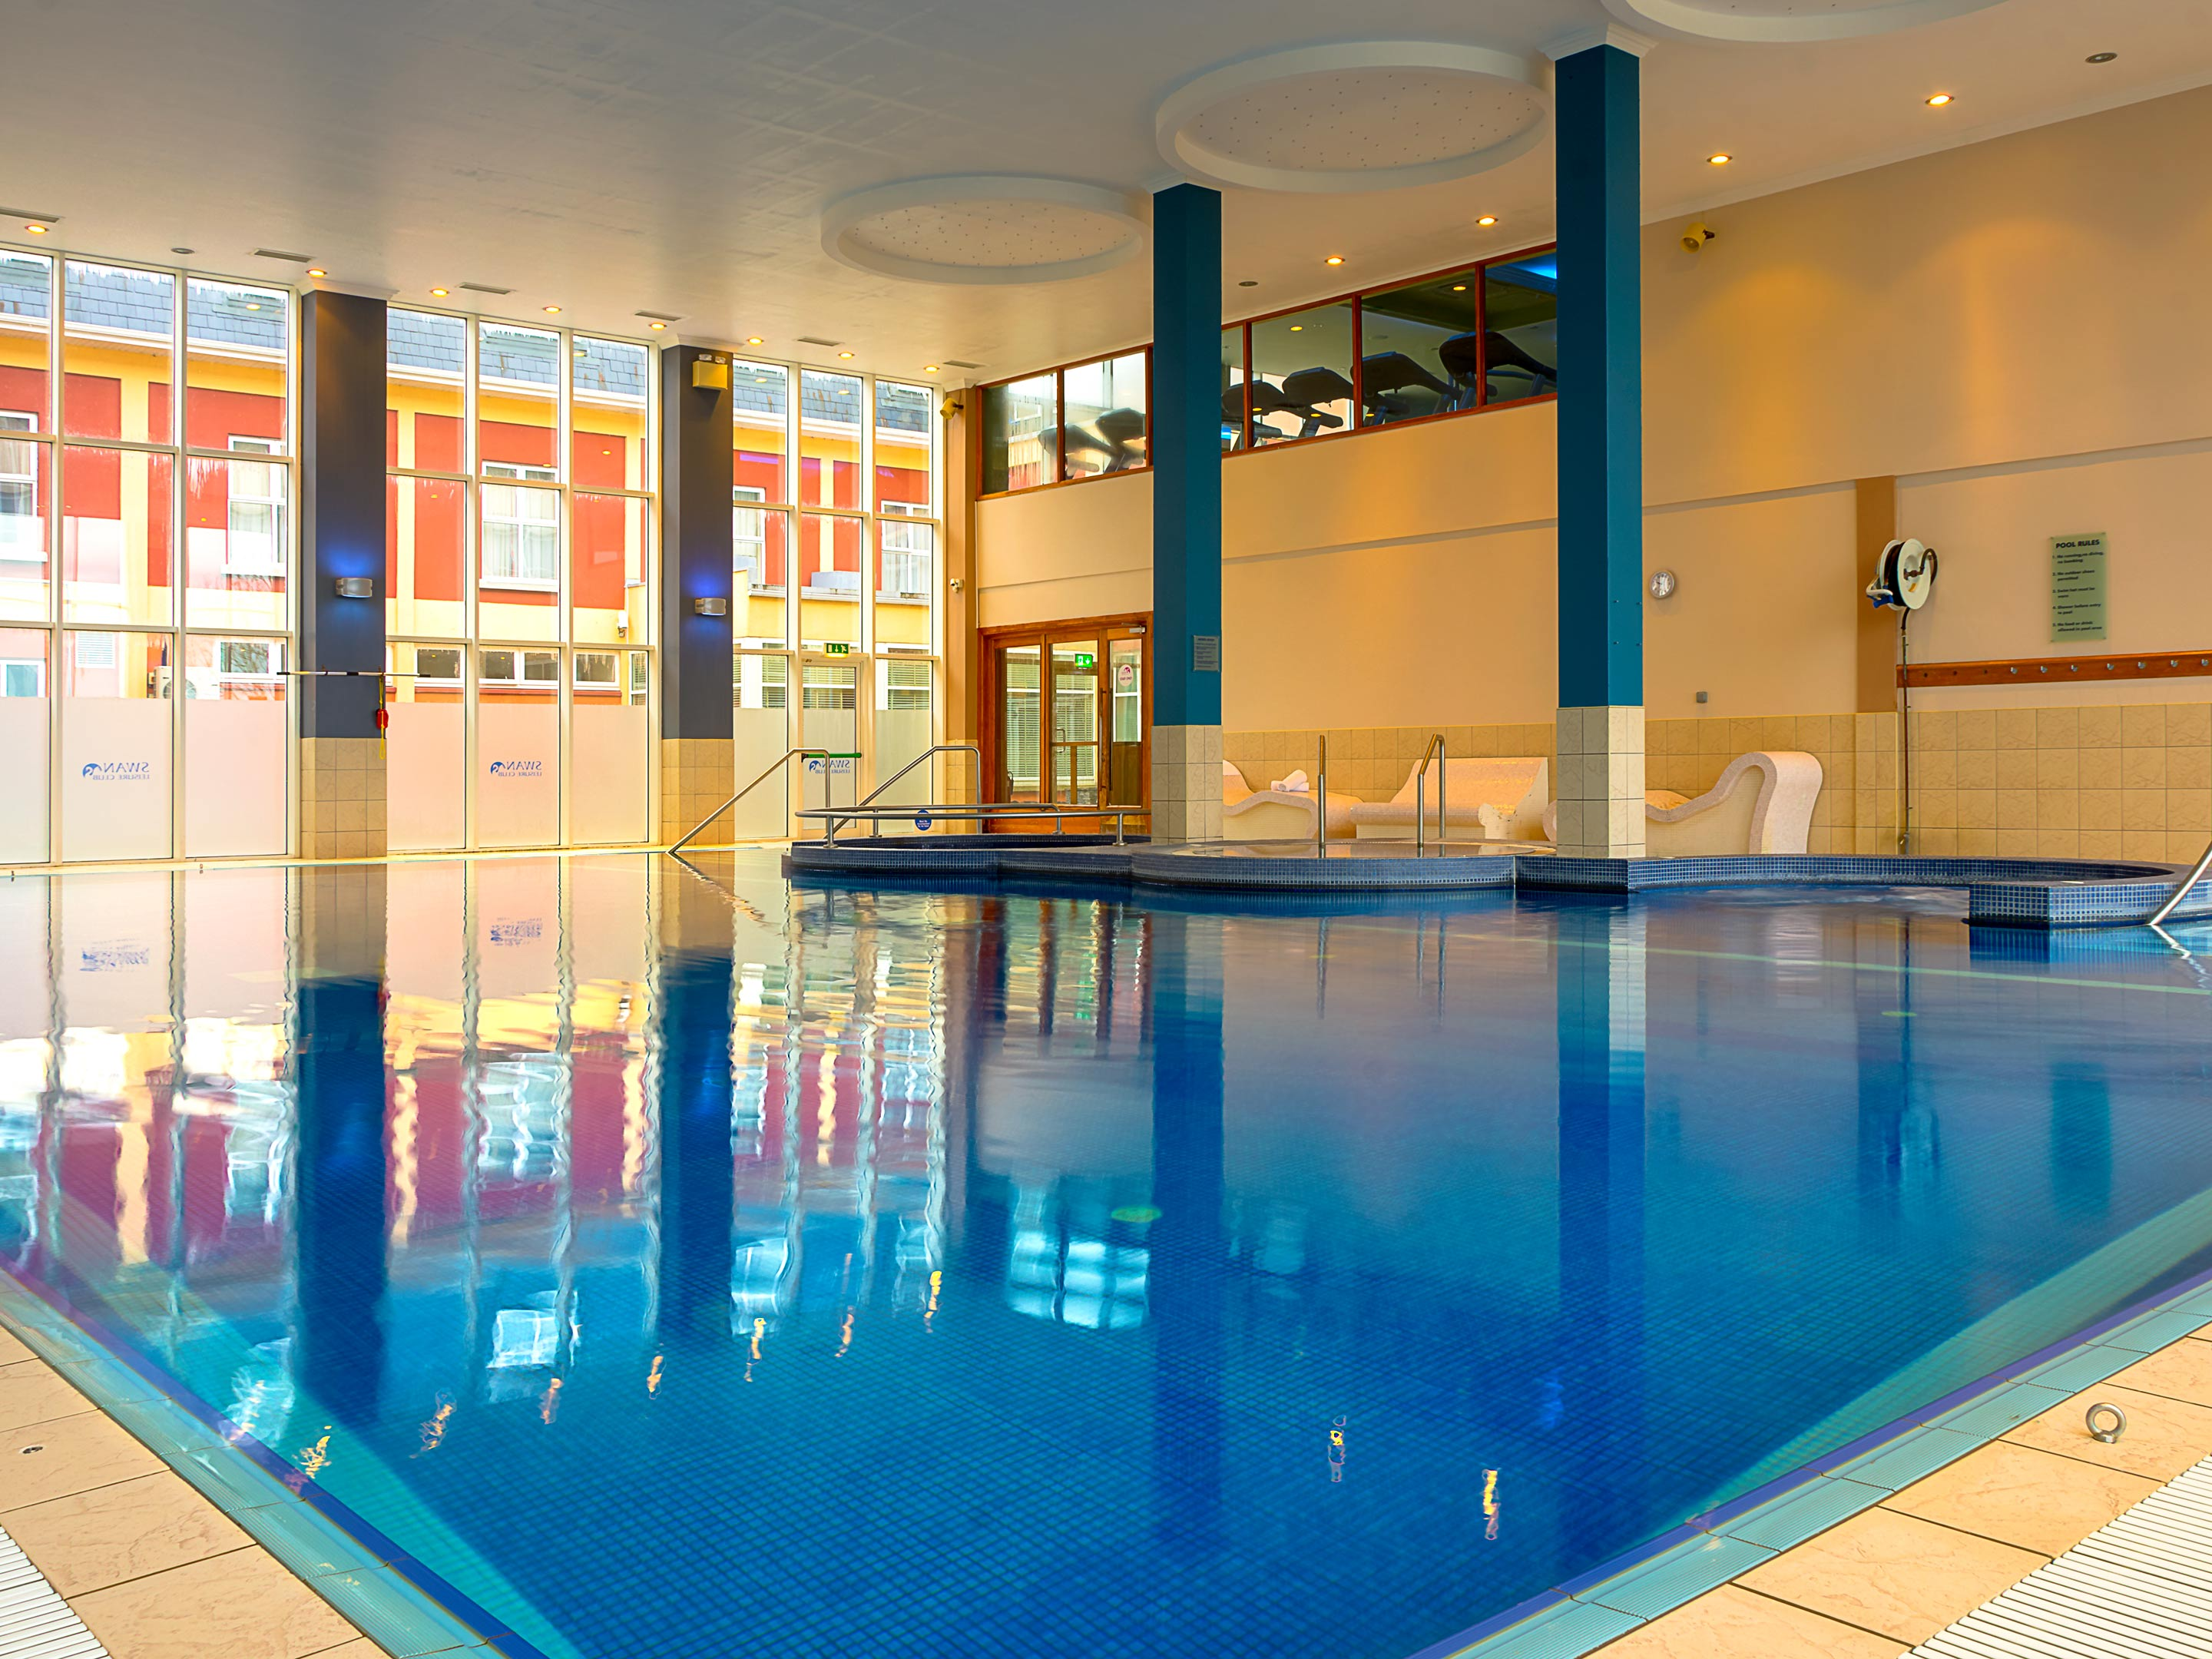 Lady Gregory Hotel And Swan Leisure Centre Galway 16